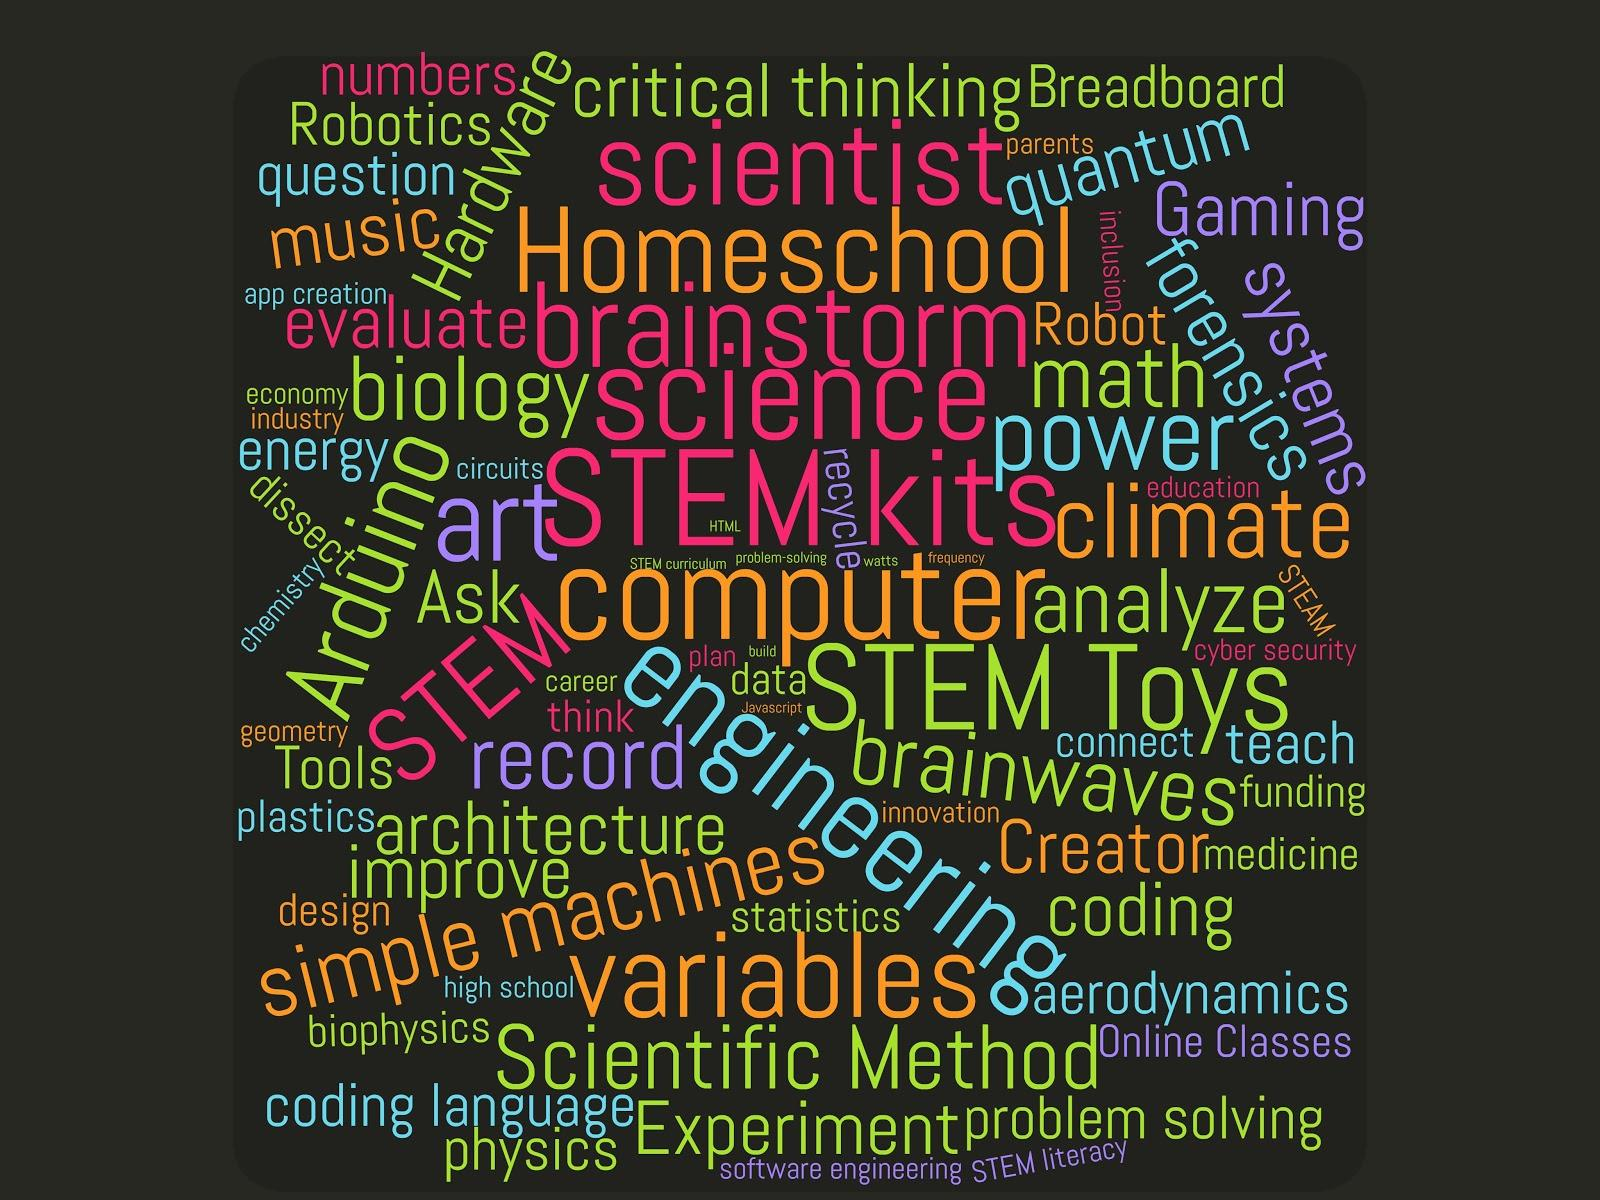 This image is a word cloud of STEM-related words including STEM kits, engineering, STEM toys, simple machines, variables, homeschool, power, math, climate, analyze, energy and many others.